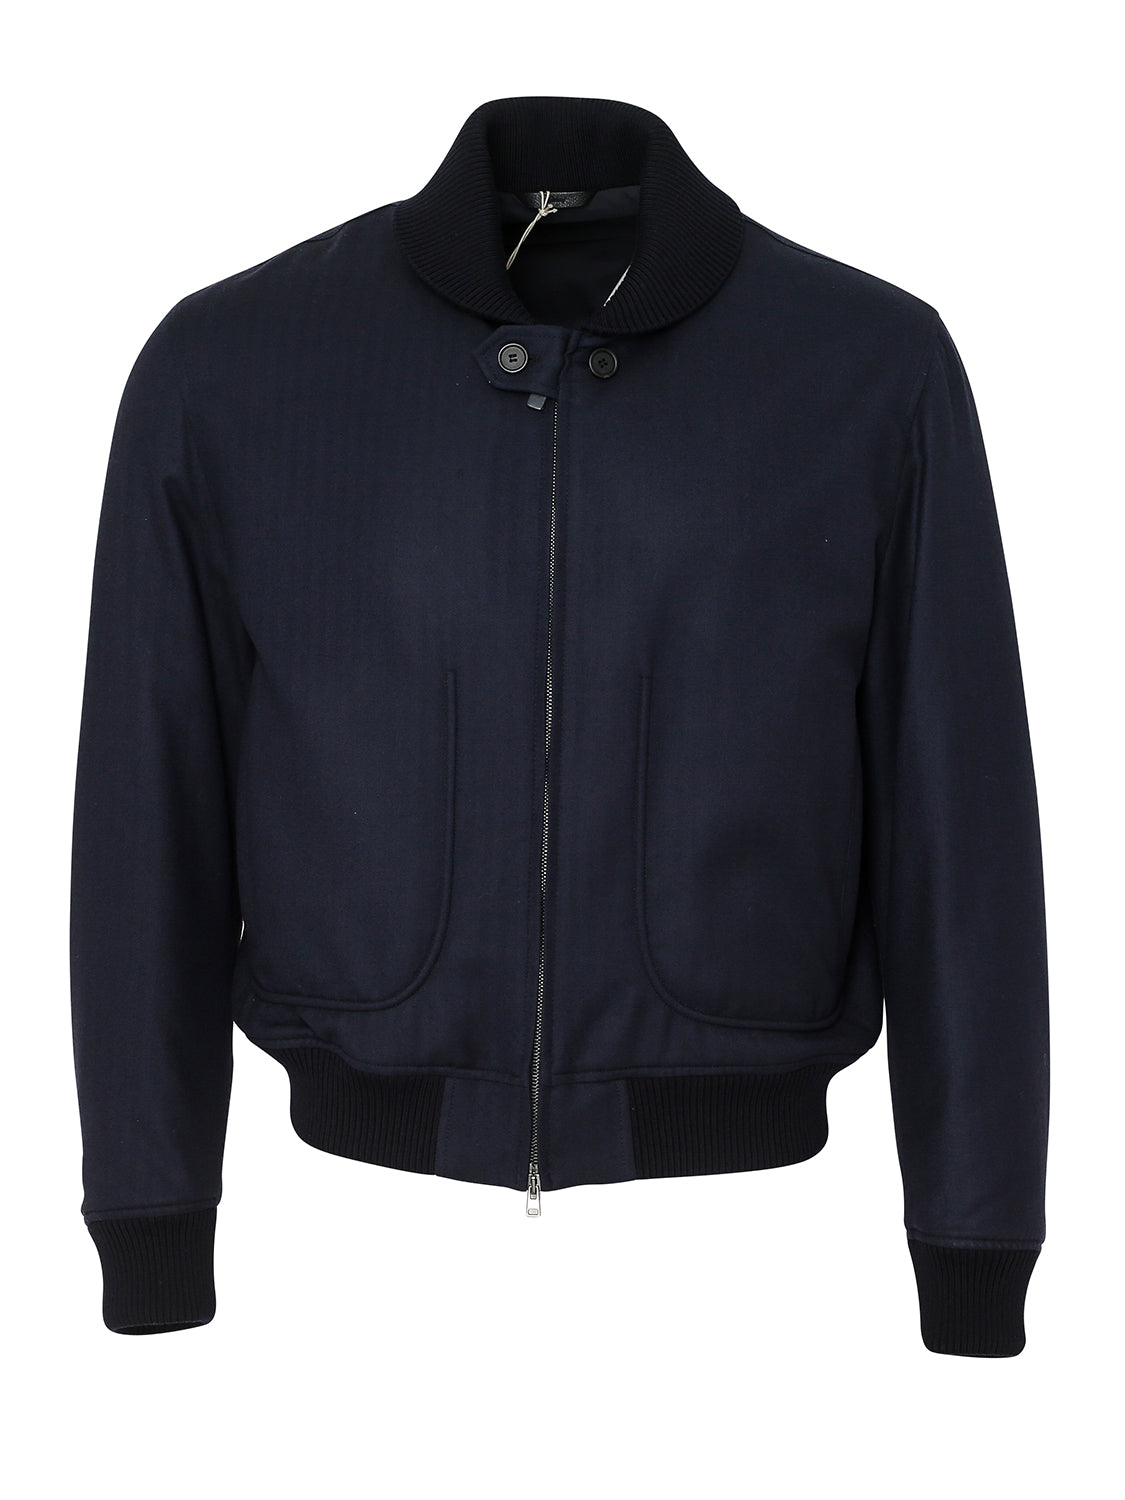 Brioni Herringbone Bomber (Midnight Blue) - Union 22